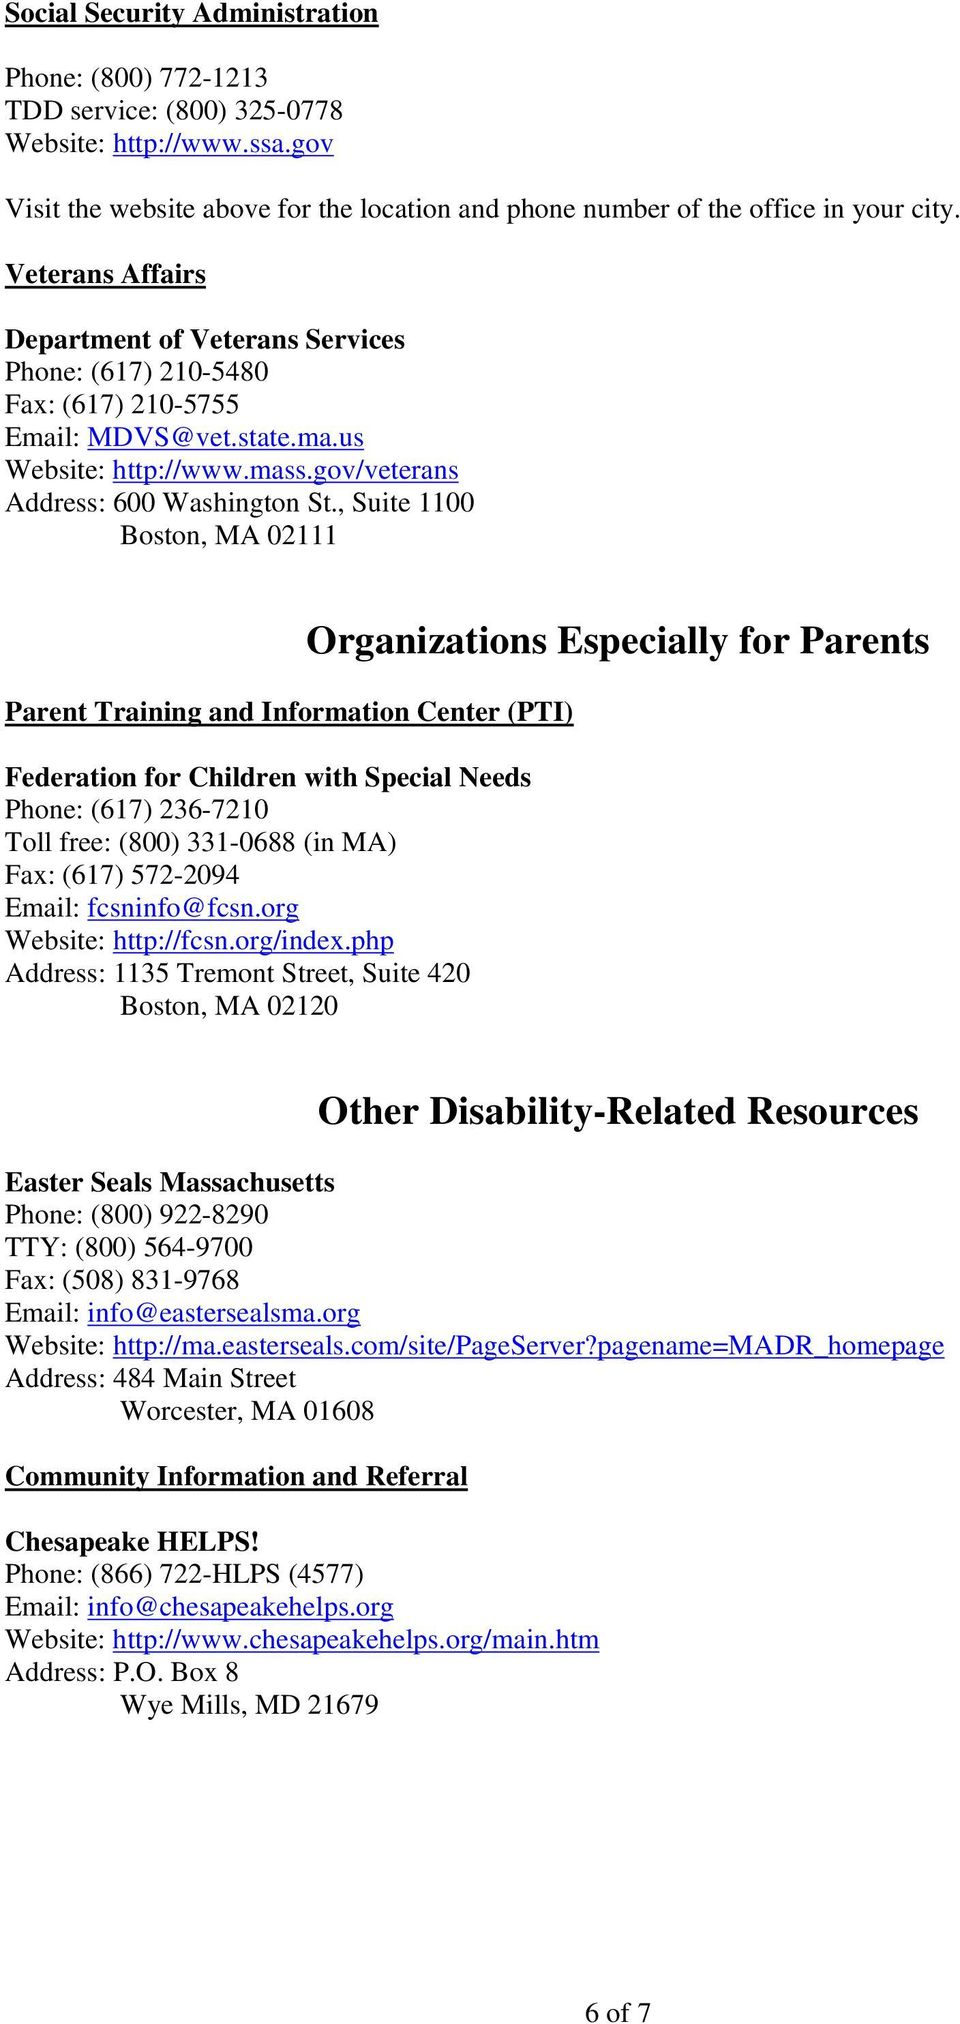 , Suite 1100 Boston, MA 02111 Parent Training and Information Center (PTI) Federation for Children with Special Needs Phone: (617) 236-7210 Toll free: (800) 331-0688 (in MA) Fax: (617) 572-2094